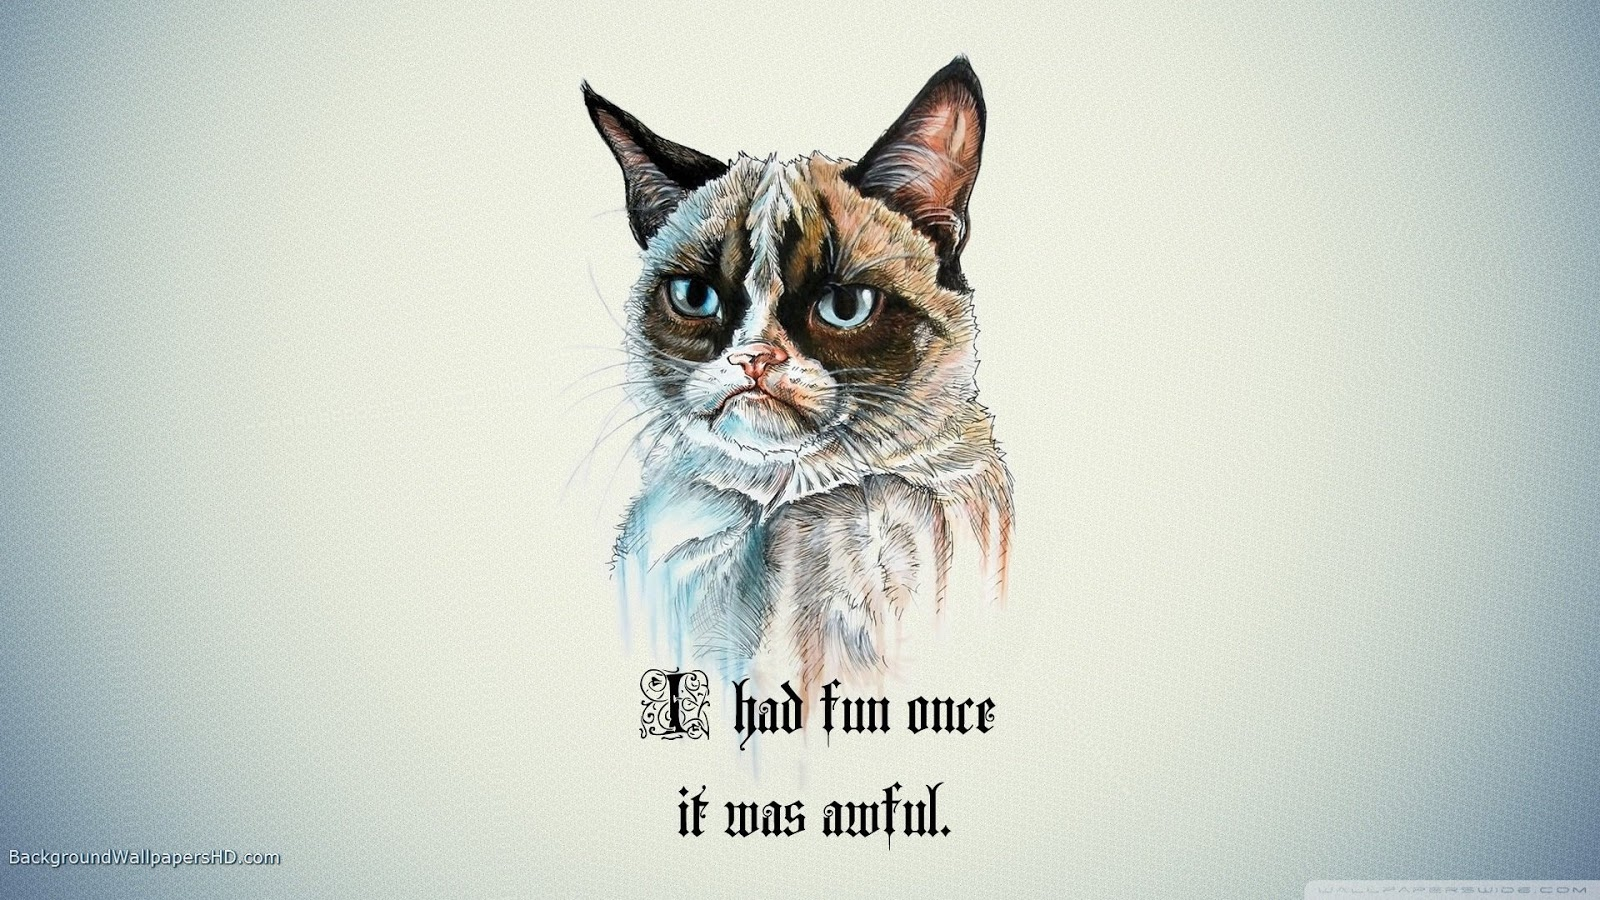 Cool Cat Funny Wallpapers in HD